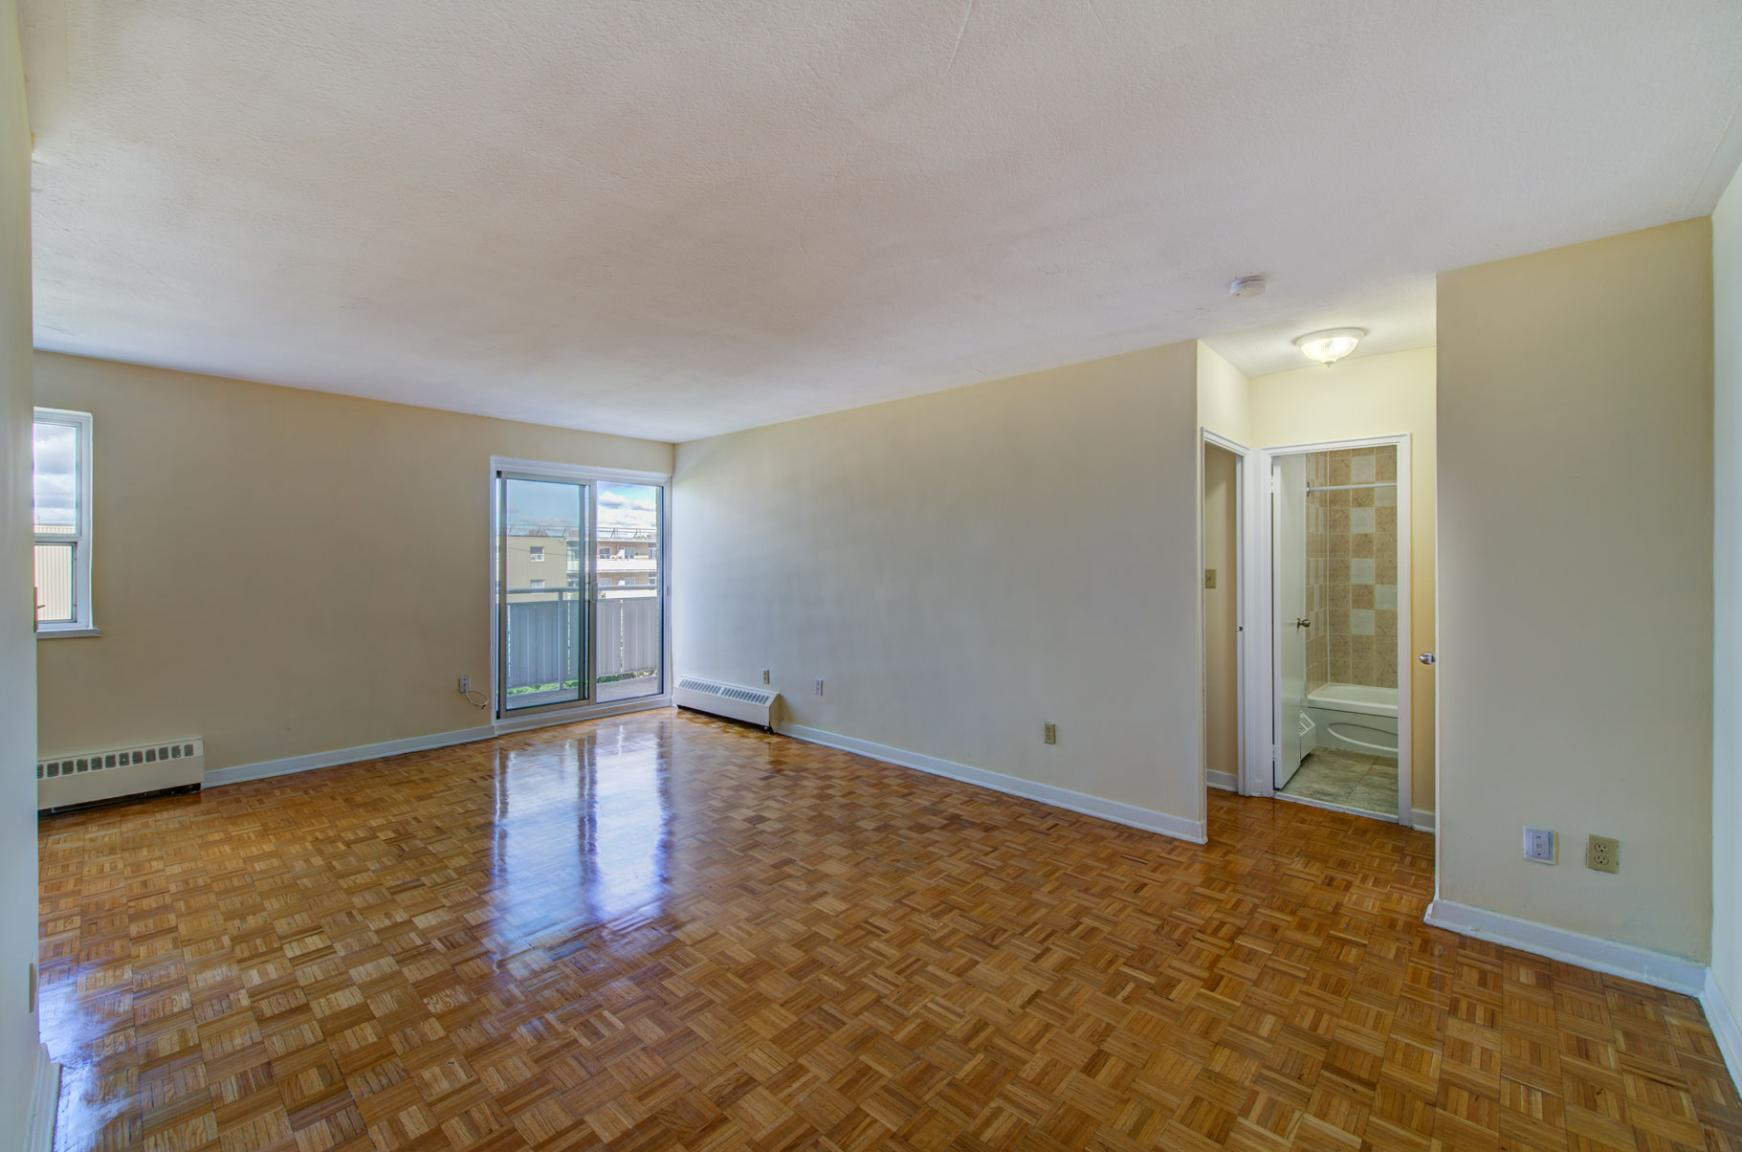 1 bedroom Apartments for rent in Etobicoke at Lake Promenade Community - Photo 15 - RentersPages – L166485